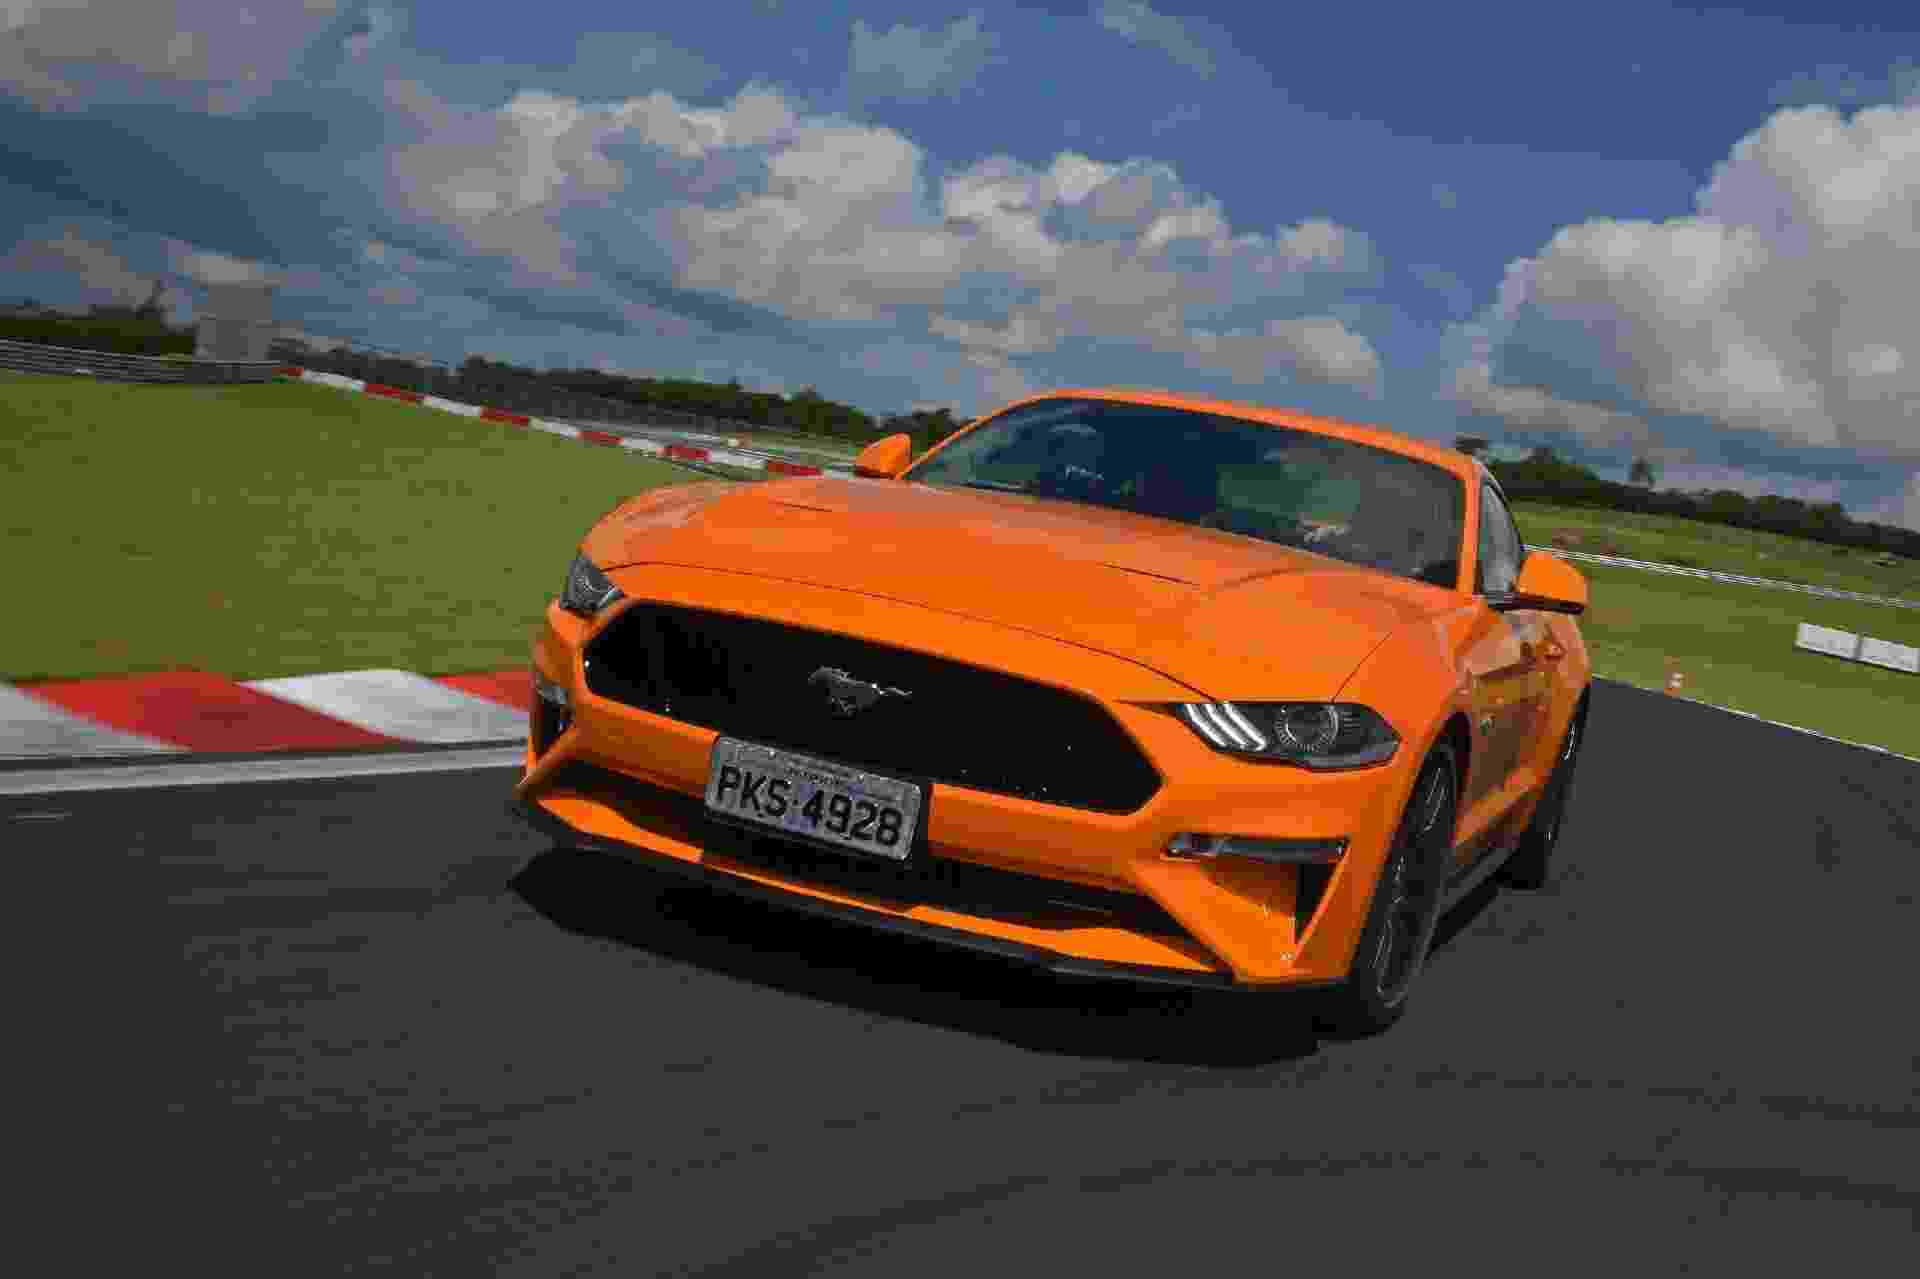 Ford Mustang GT Premium - Murilo Góes/UOL